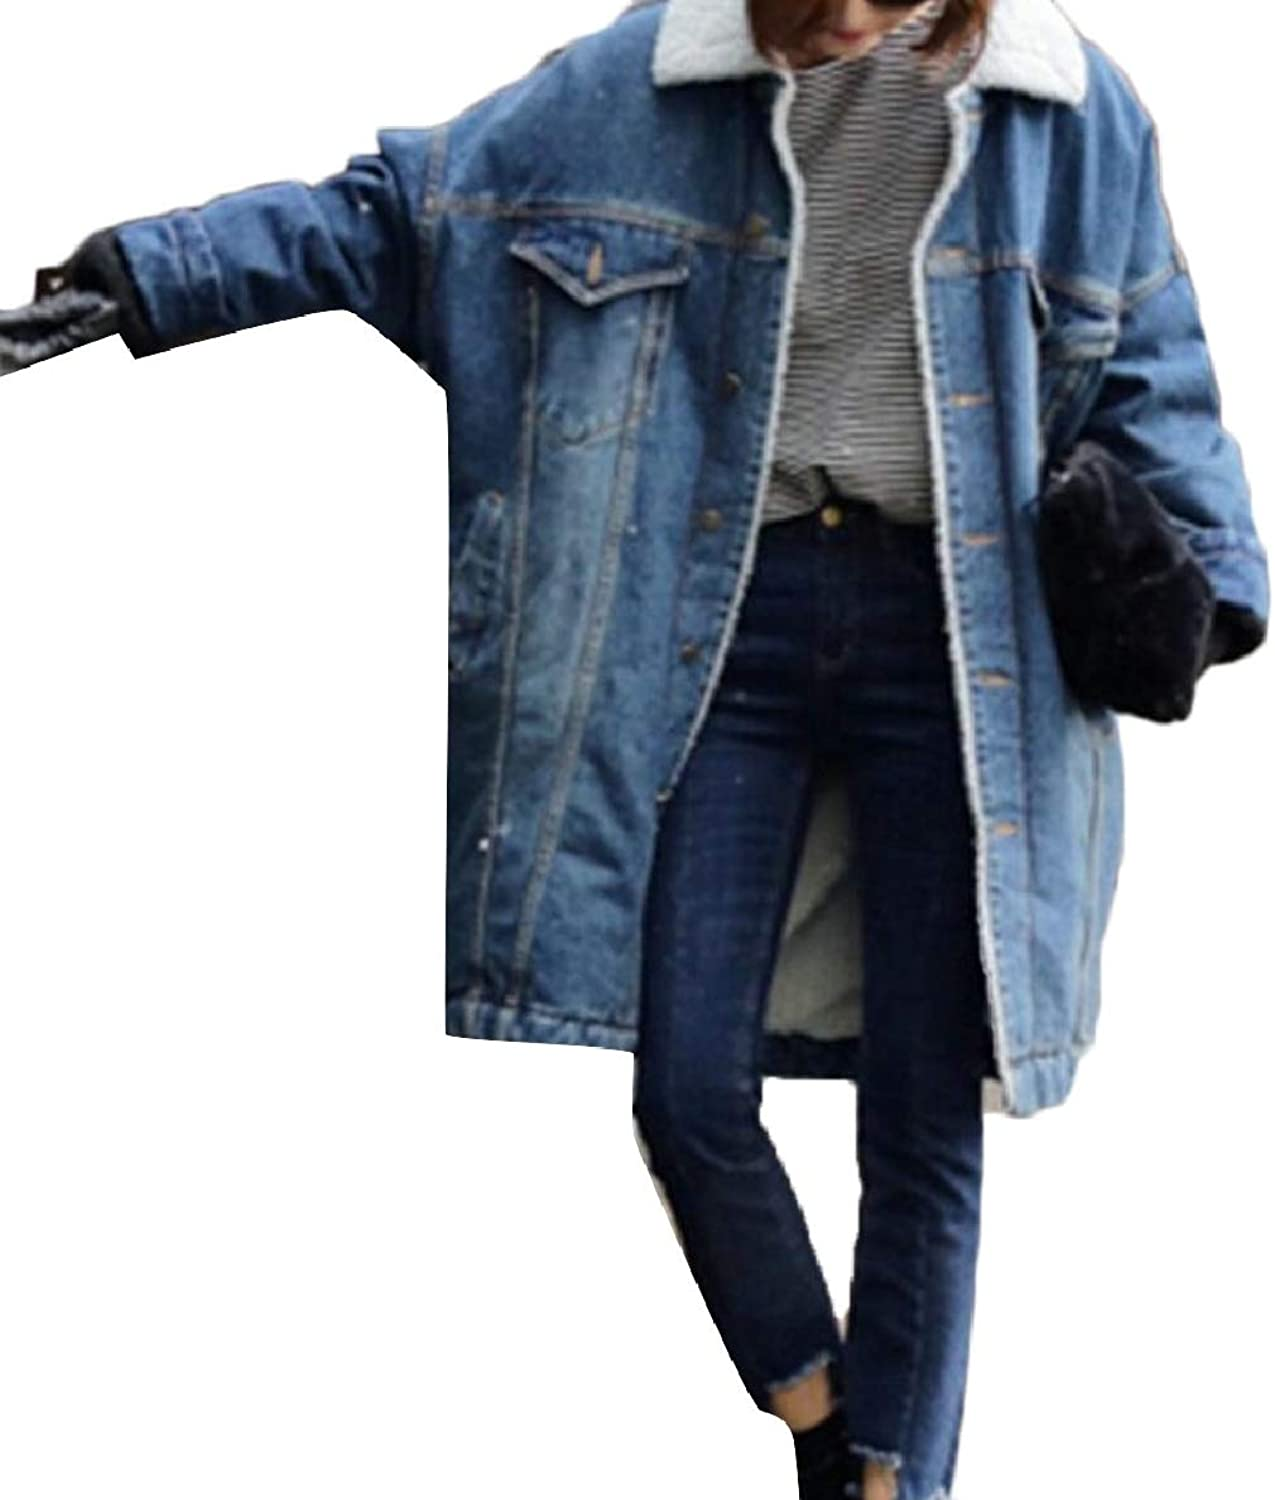 Xswsy XGCA Women's Retro Mid Long Sherpa Lined Denim Jacket Coat Outwear